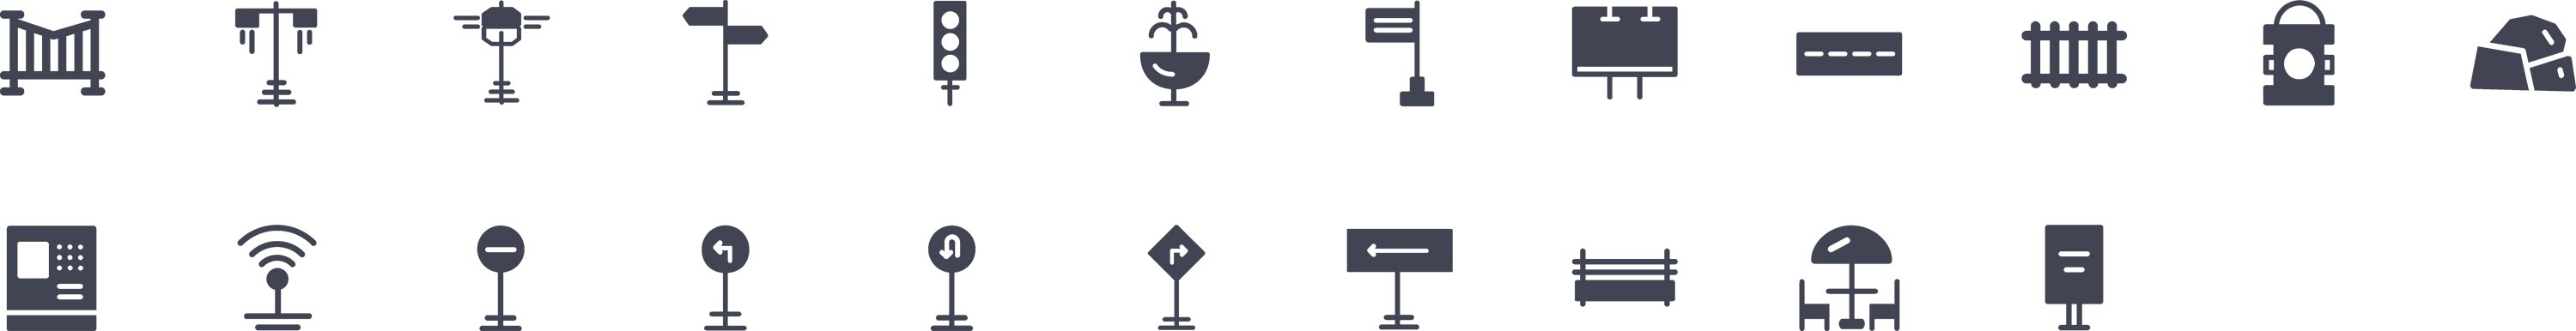 Street Elements Glyph Icons